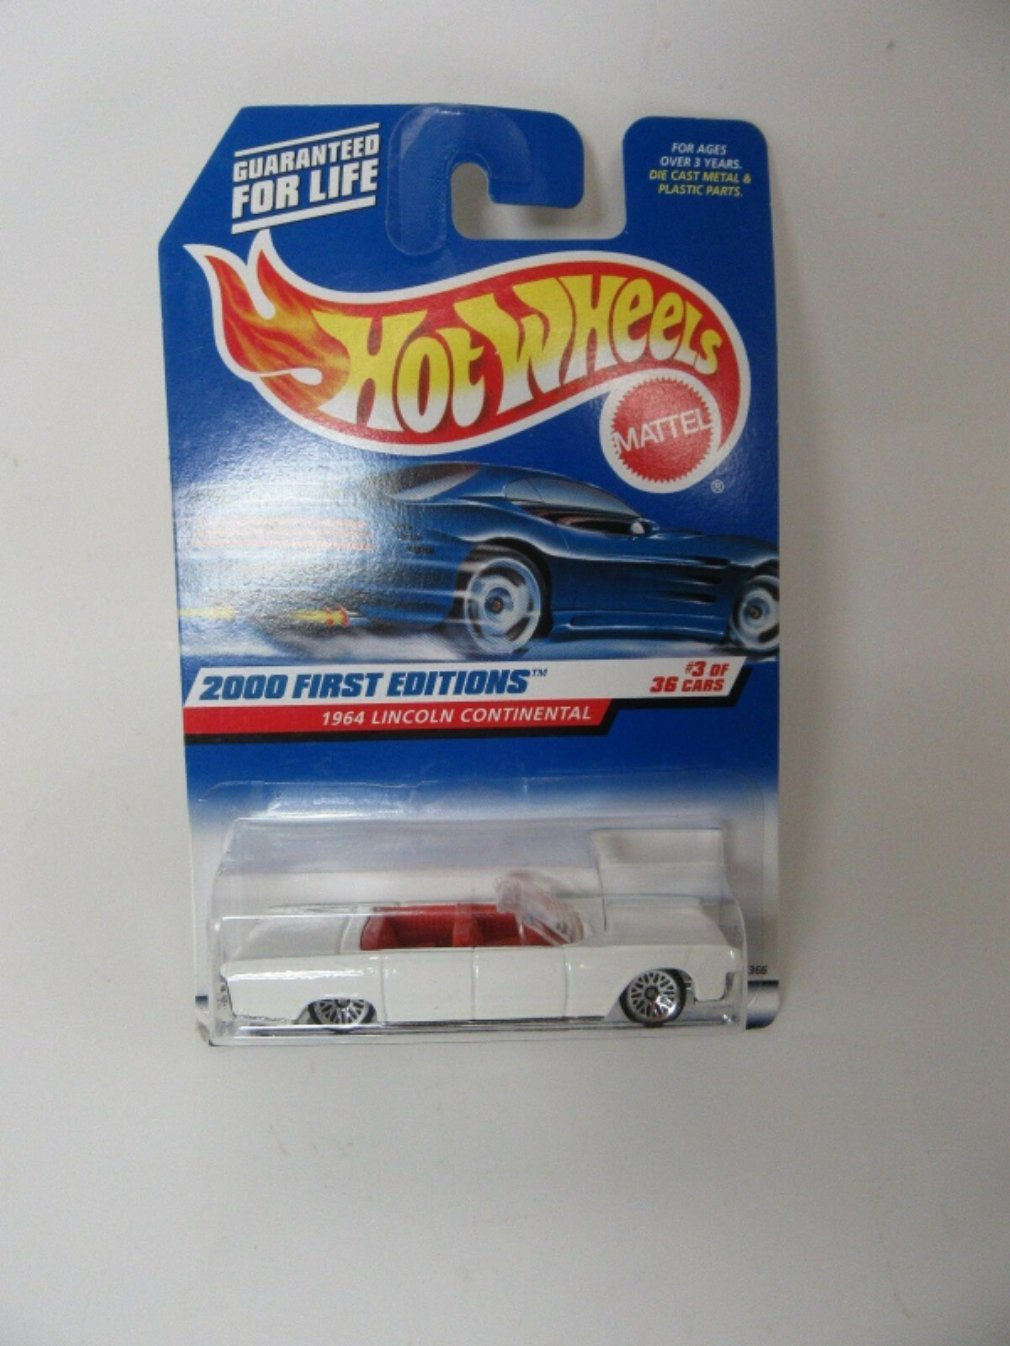 2000 Hot Wheels First Editions 1964 Lincoln Continental Car #3 of 36 NOS